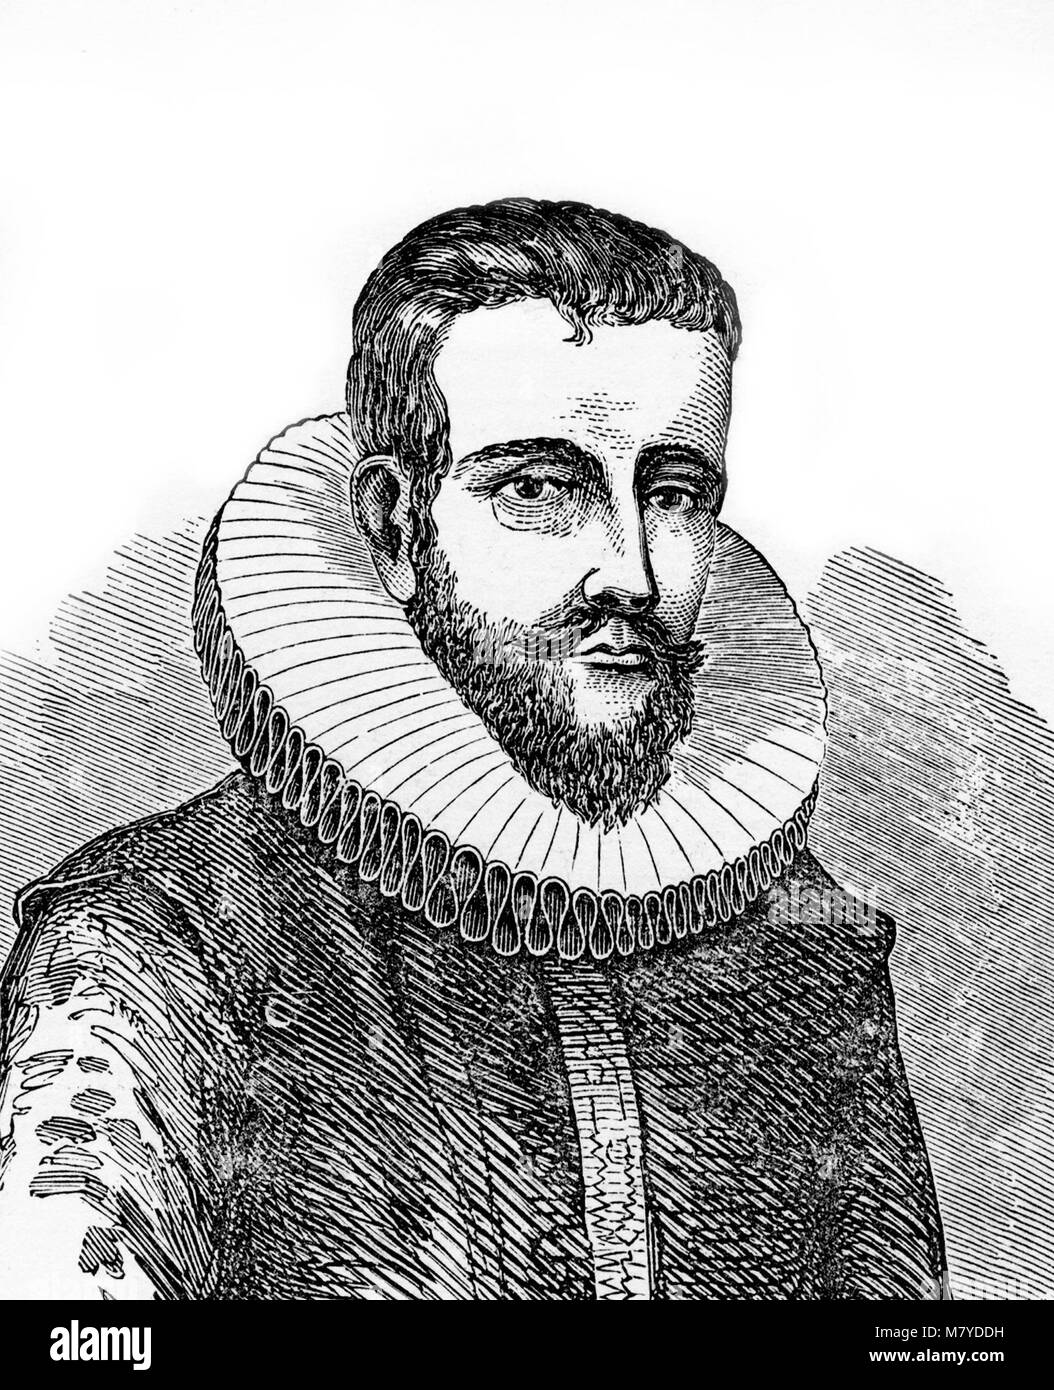 Henry Hudson (1565-1611), portrait of the English explorer, best known for his explorations of present-day Canada - Stock Image